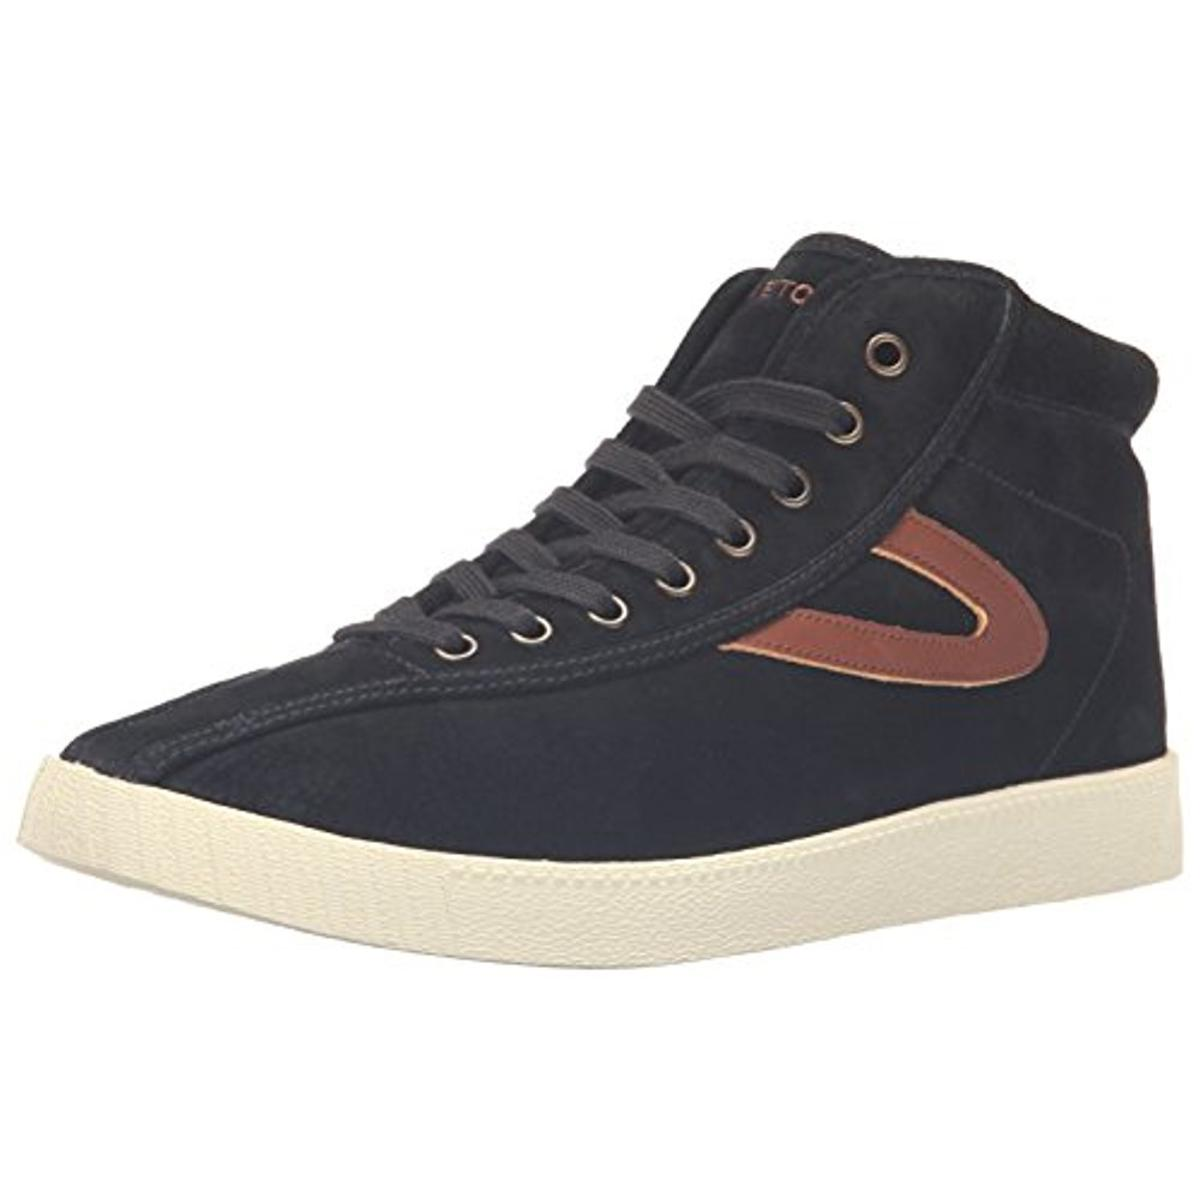 Click here to buy Tretorn Mens Nylite Hi7 Suede Hi Top Fashion Sneakers by Tretorn.